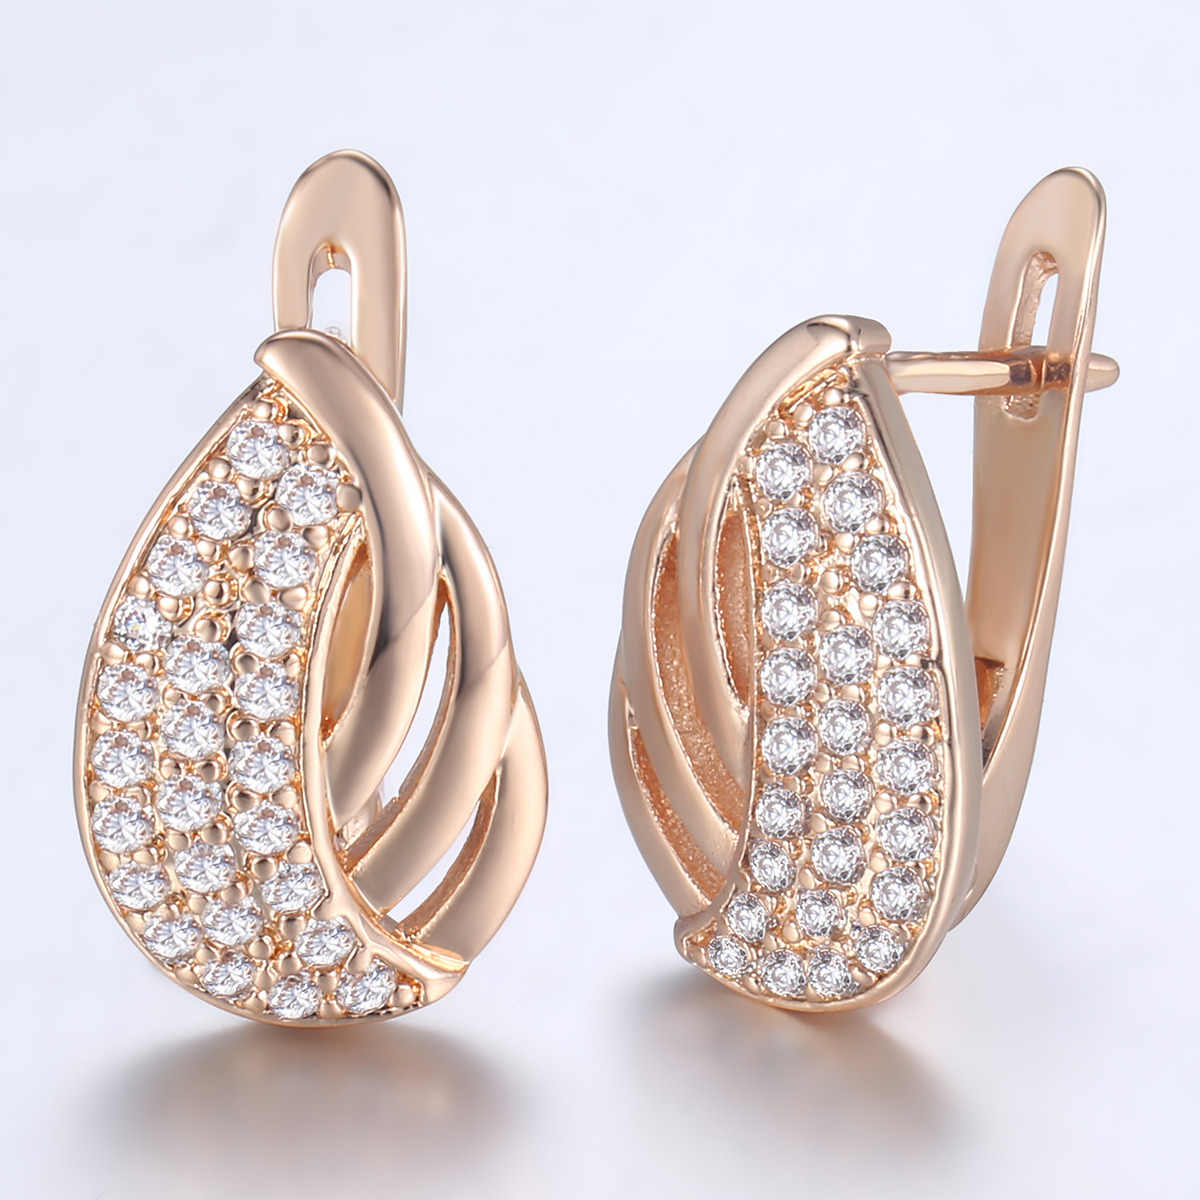 b0d9241b7 Davieslee 585 Rose Gold Filled Stud Earrings For Women Leaf Shaped Paved  Clear CZ Earrings Womens